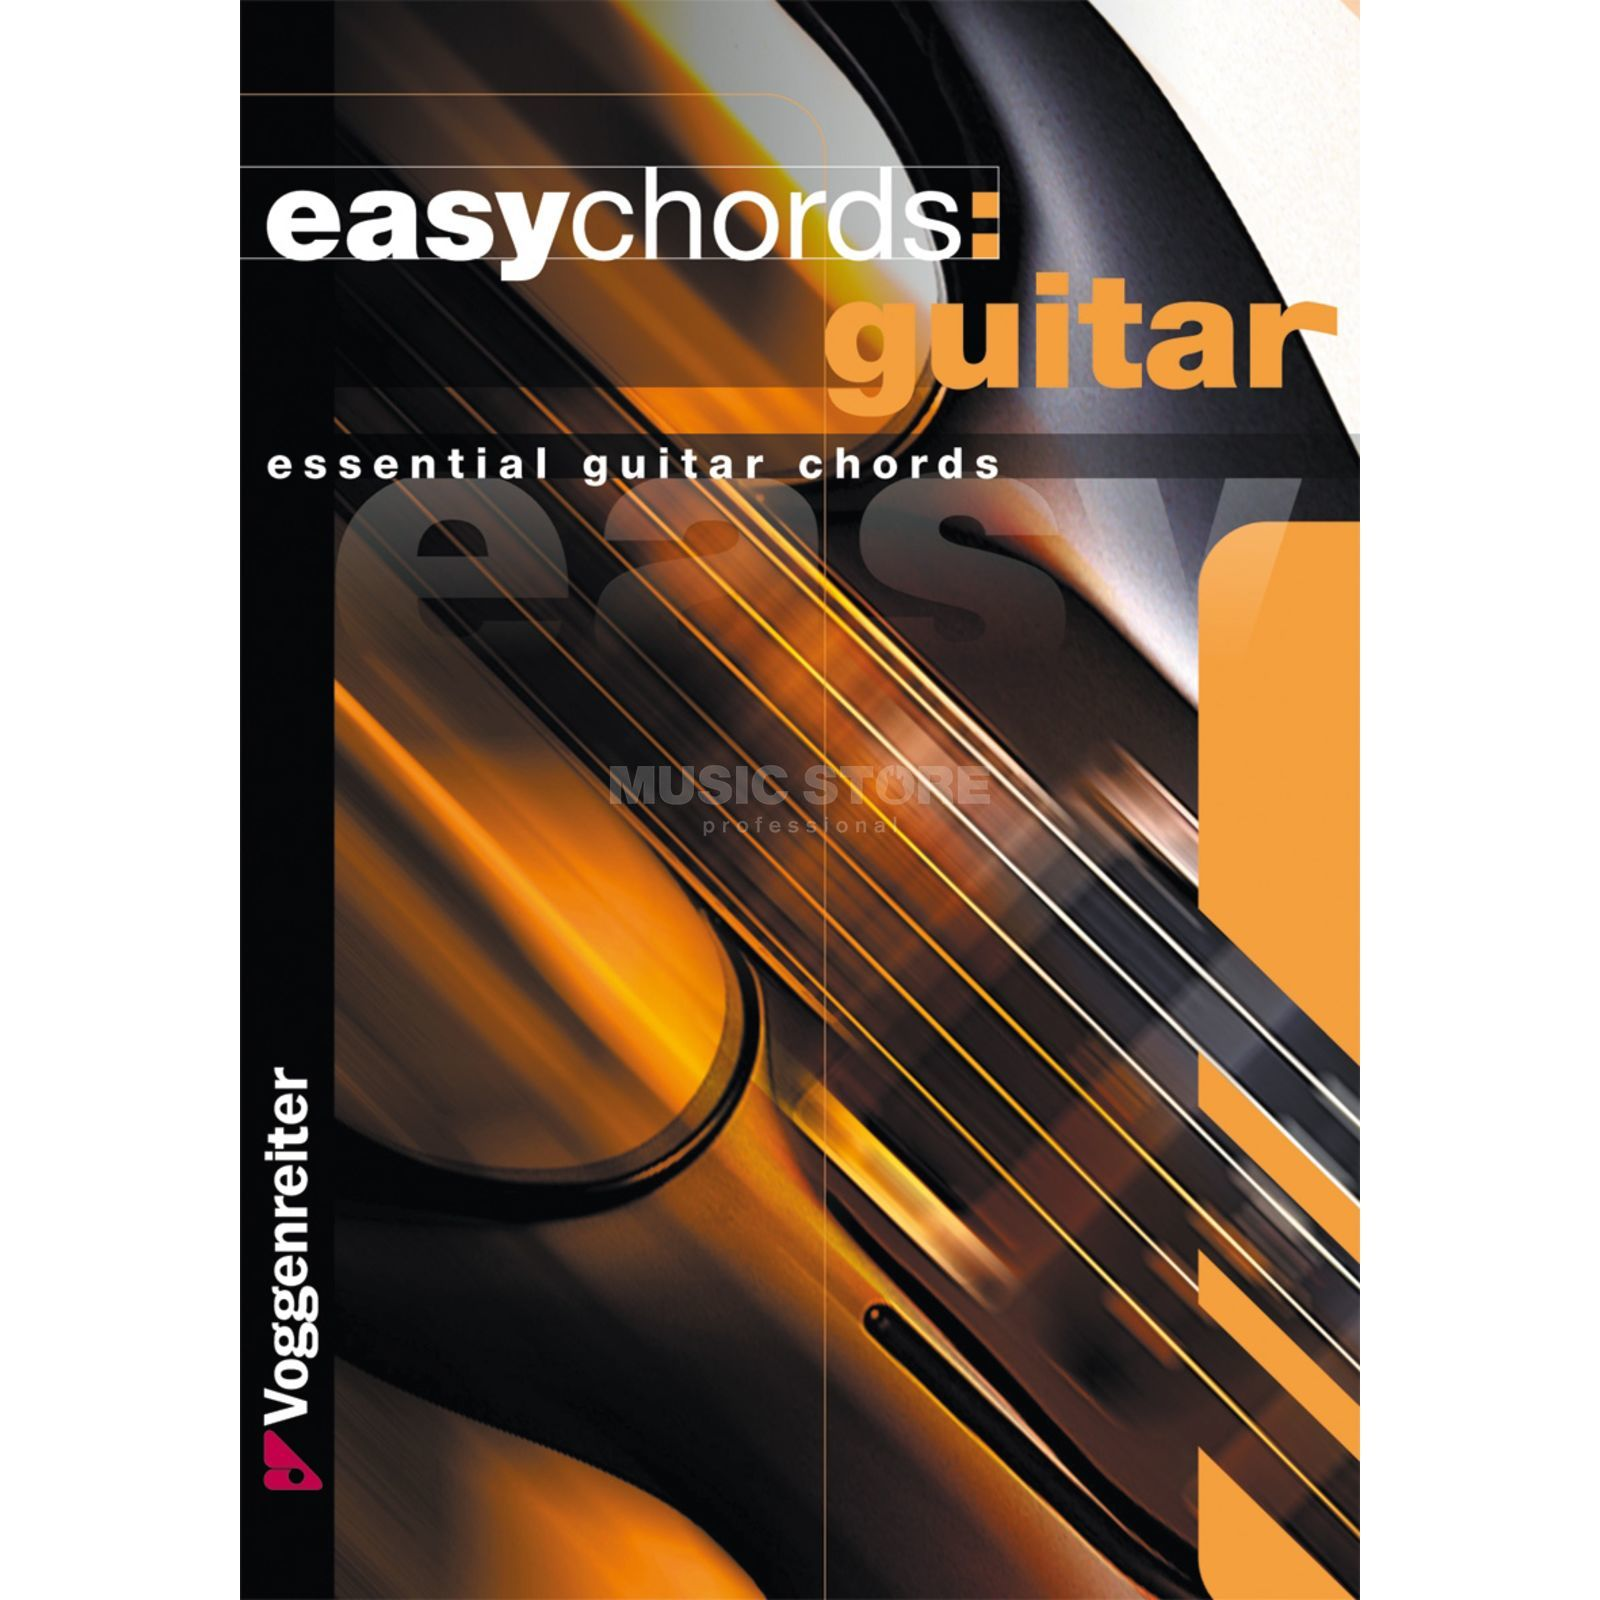 Voggenreiter Easy Chords Guitar ENGLISH Bessler & Opgenoorth Produktbillede